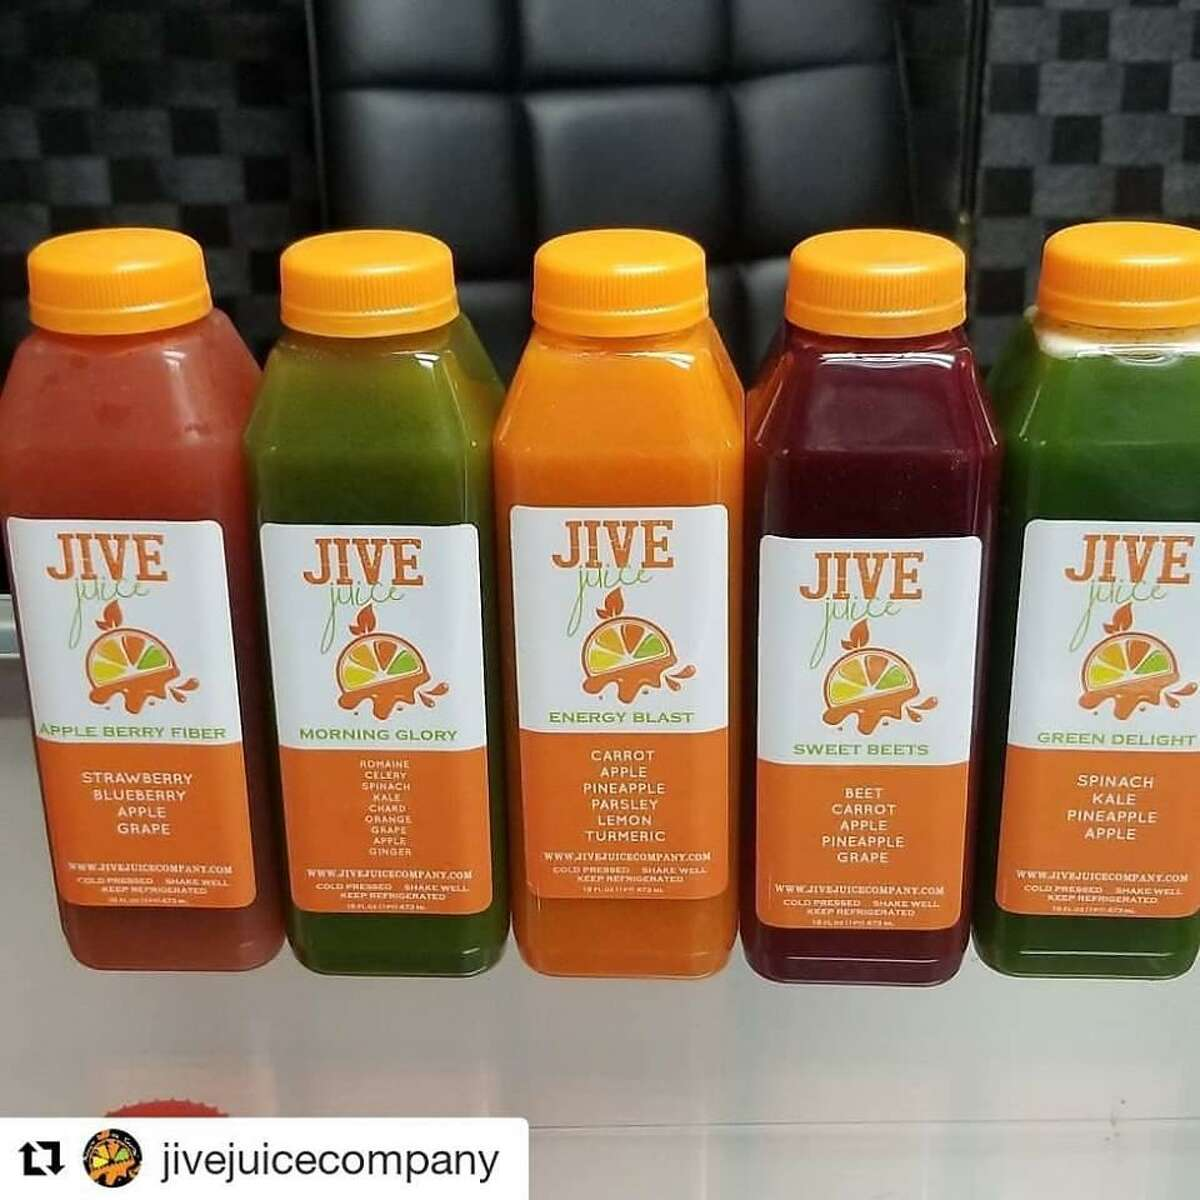 Other products from Tamala Austin's company include smoothies, cleanses, H20-infused refreshers, teas and workout drinks.